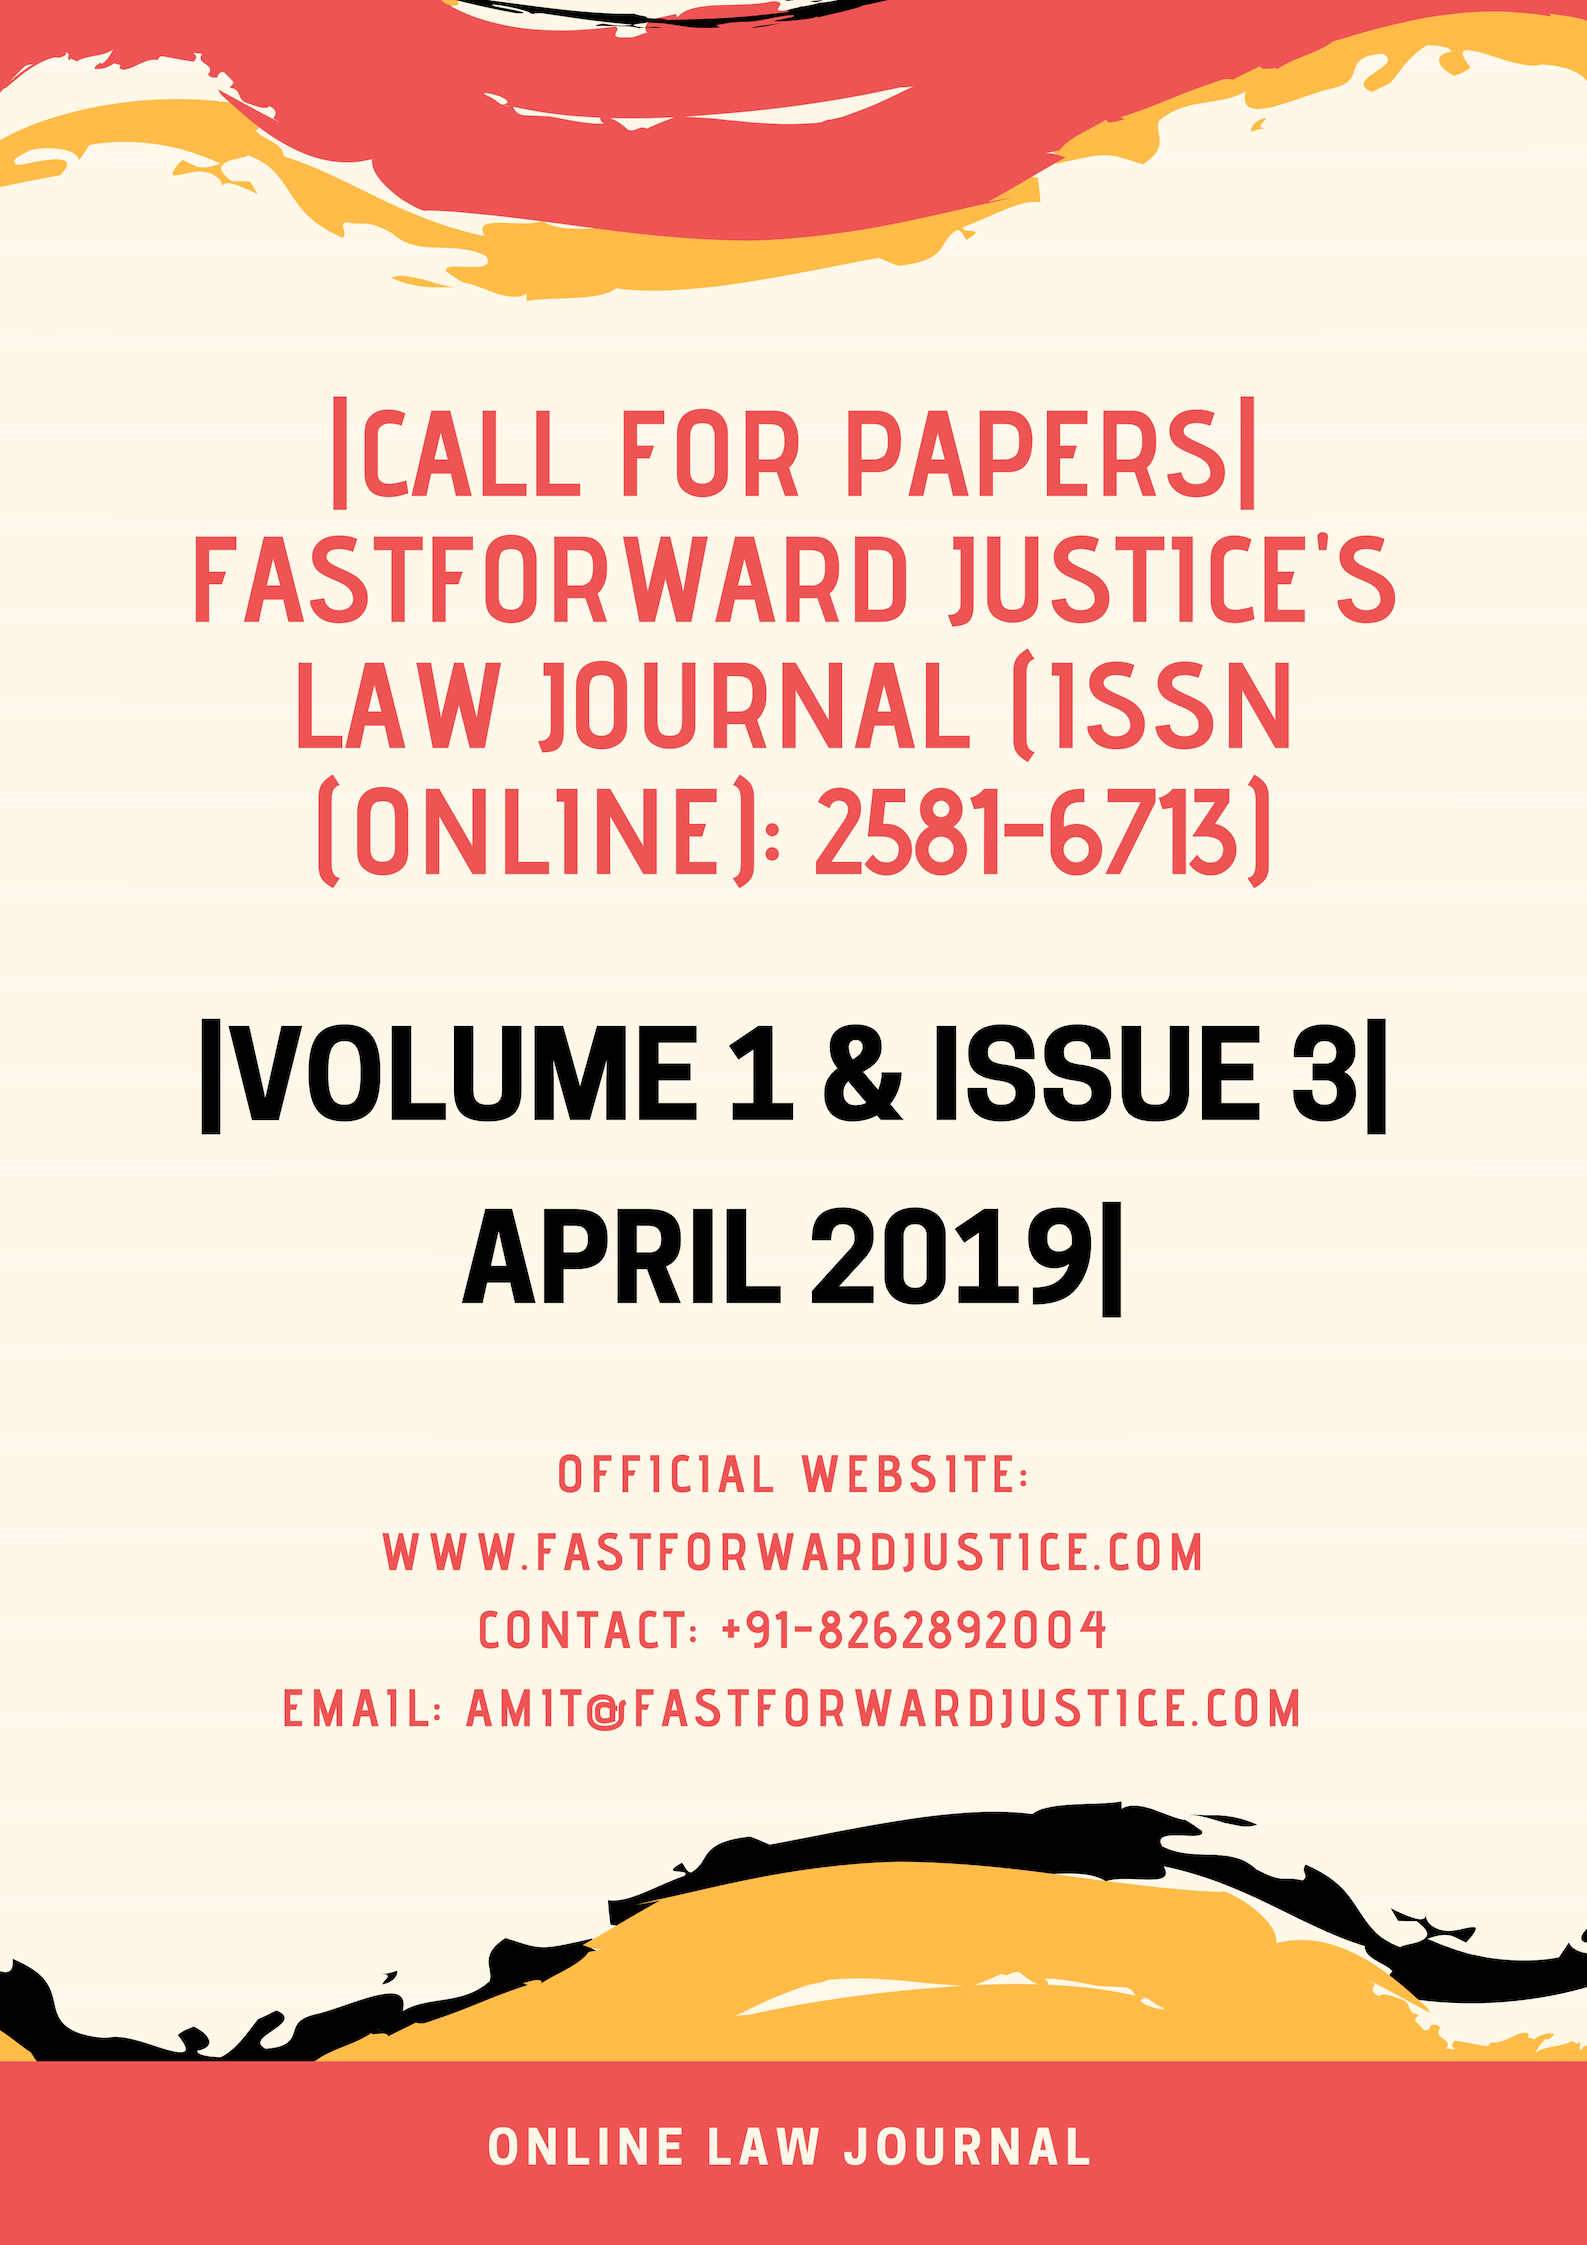 FastForward Justice's Law Journal